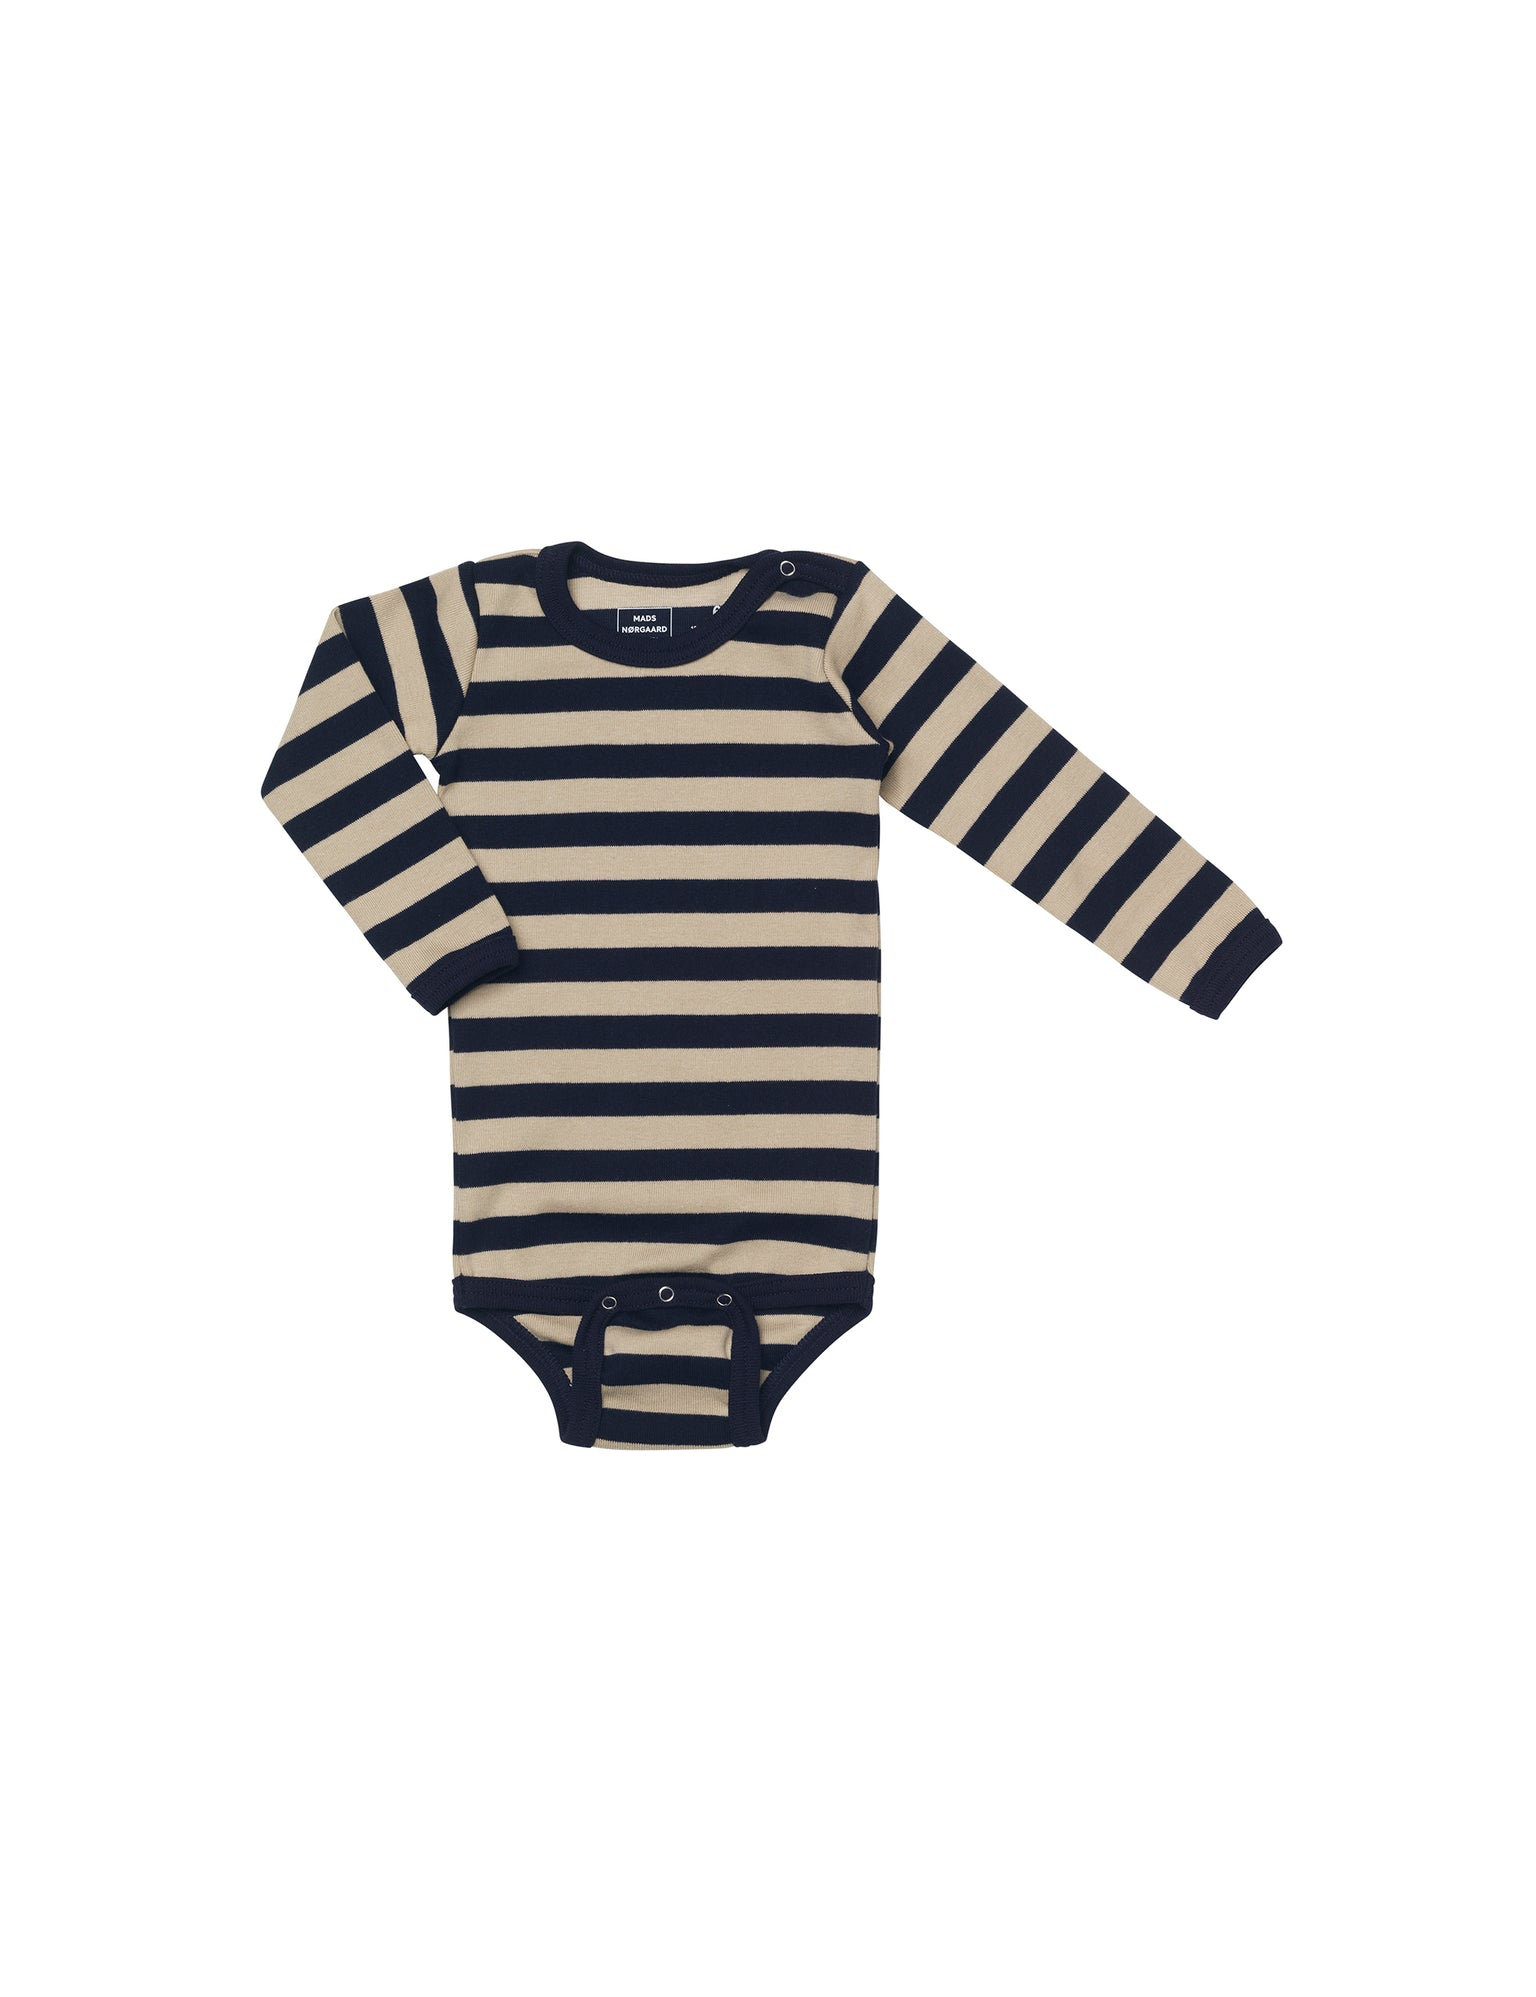 Midi Rib Body, Beige/Navy